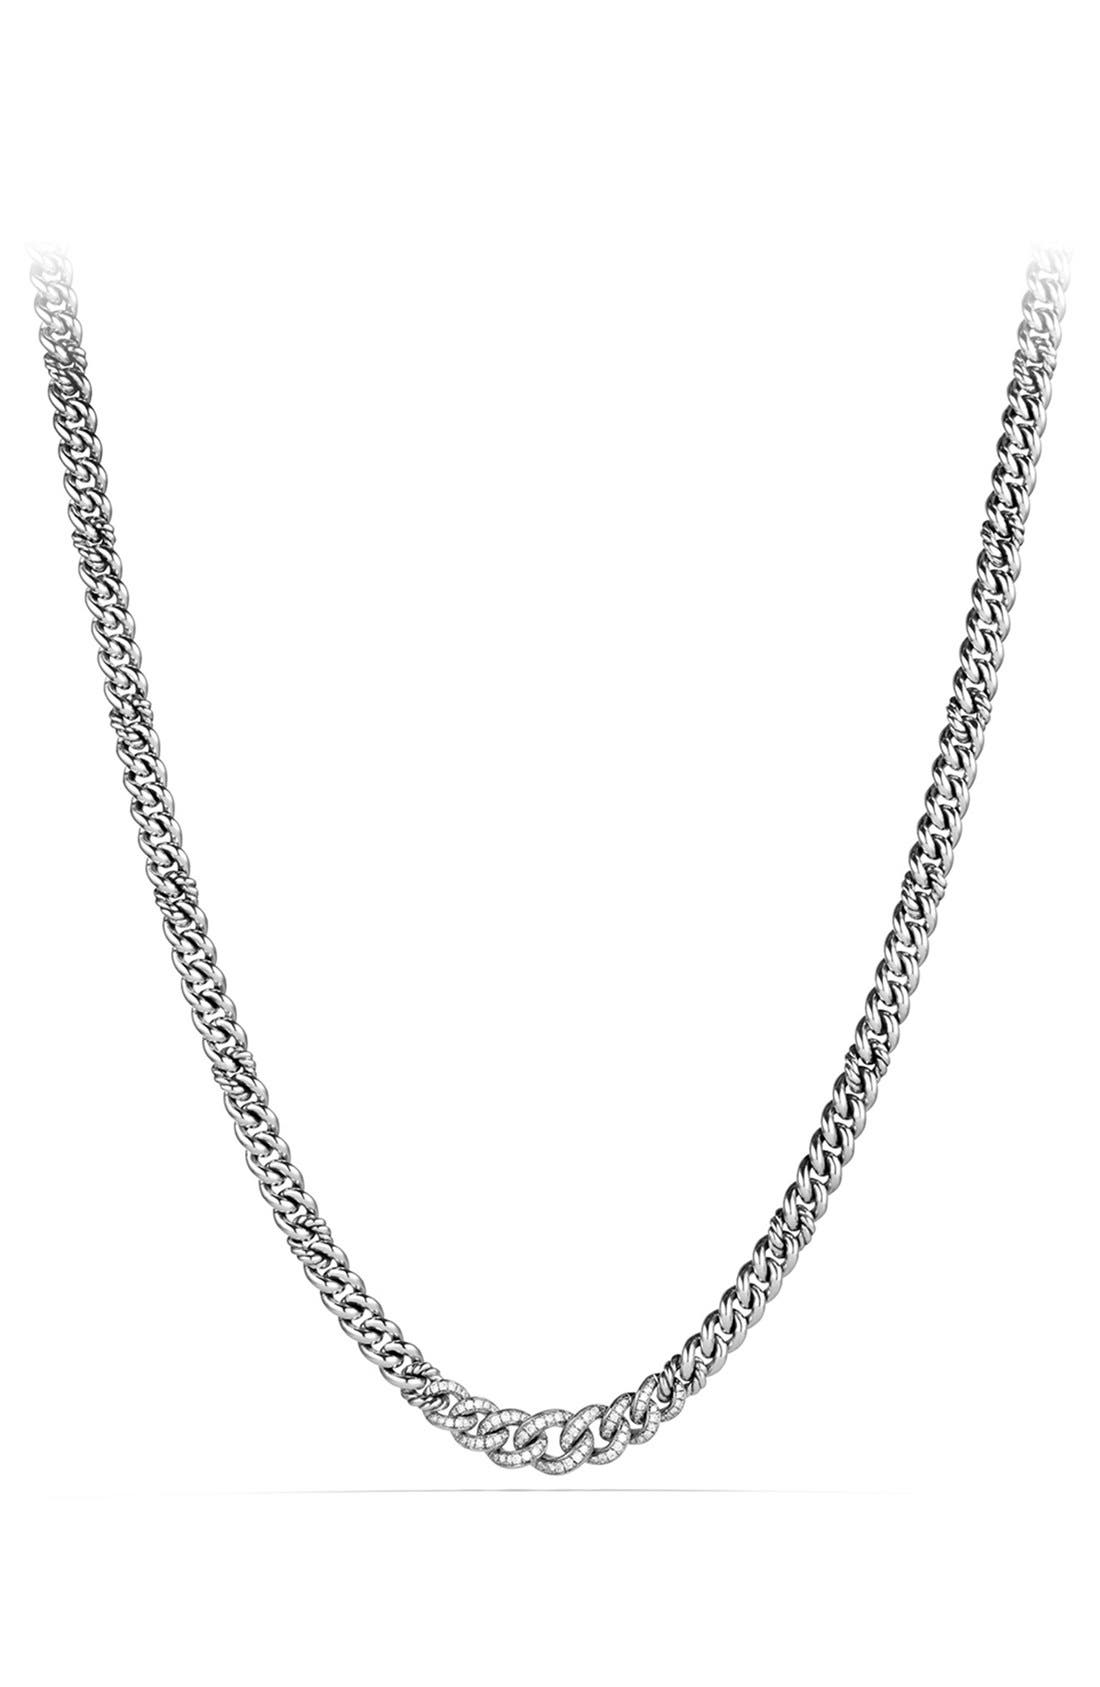 David Yurman 'Petite Pavé' Curb Chain Necklace with Diamonds